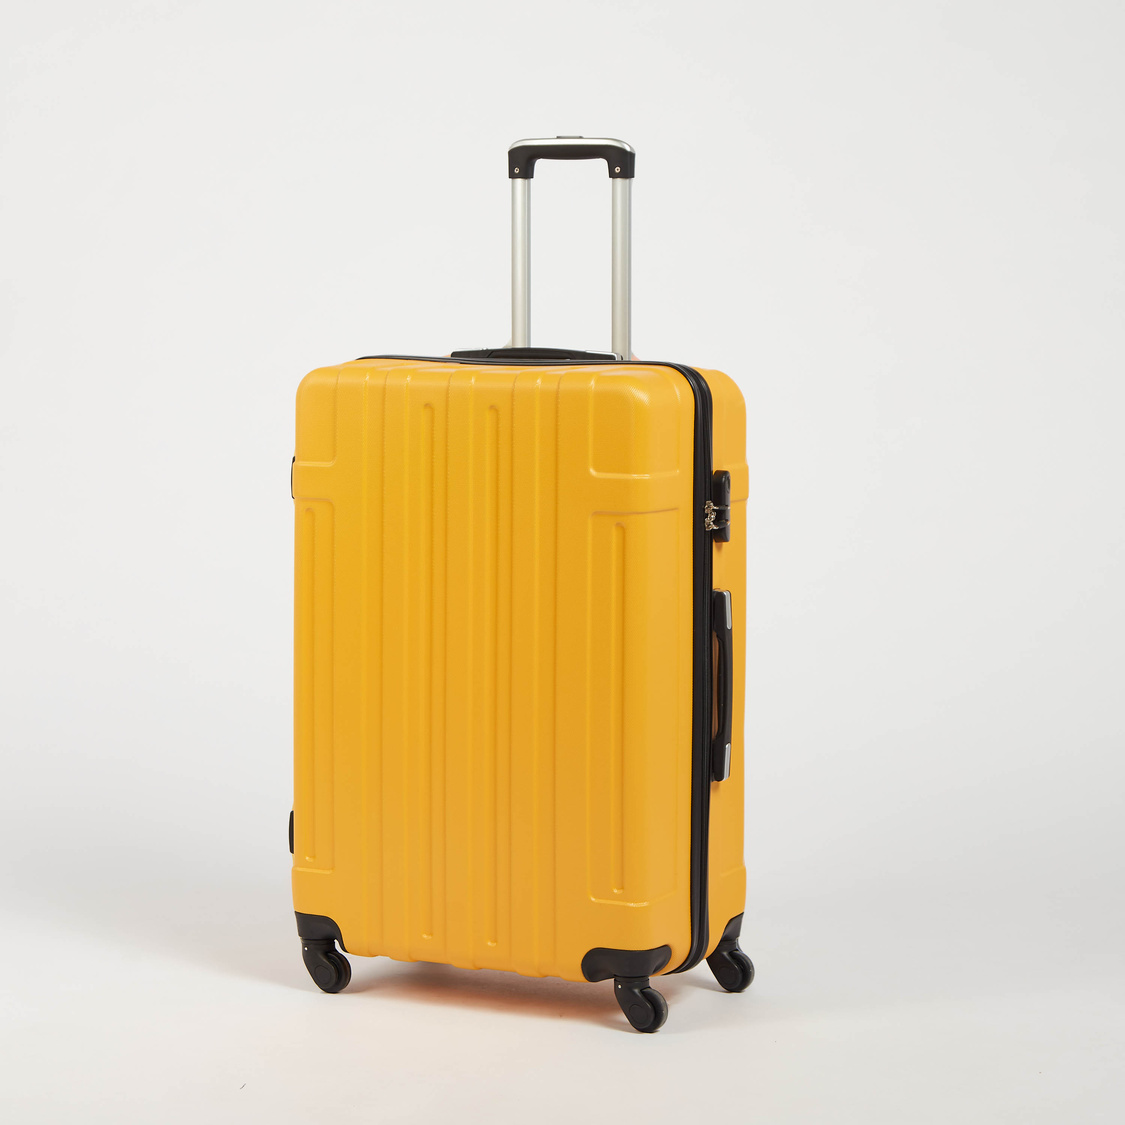 Solid Hardside Trolley Suitcase with Retractable Handle